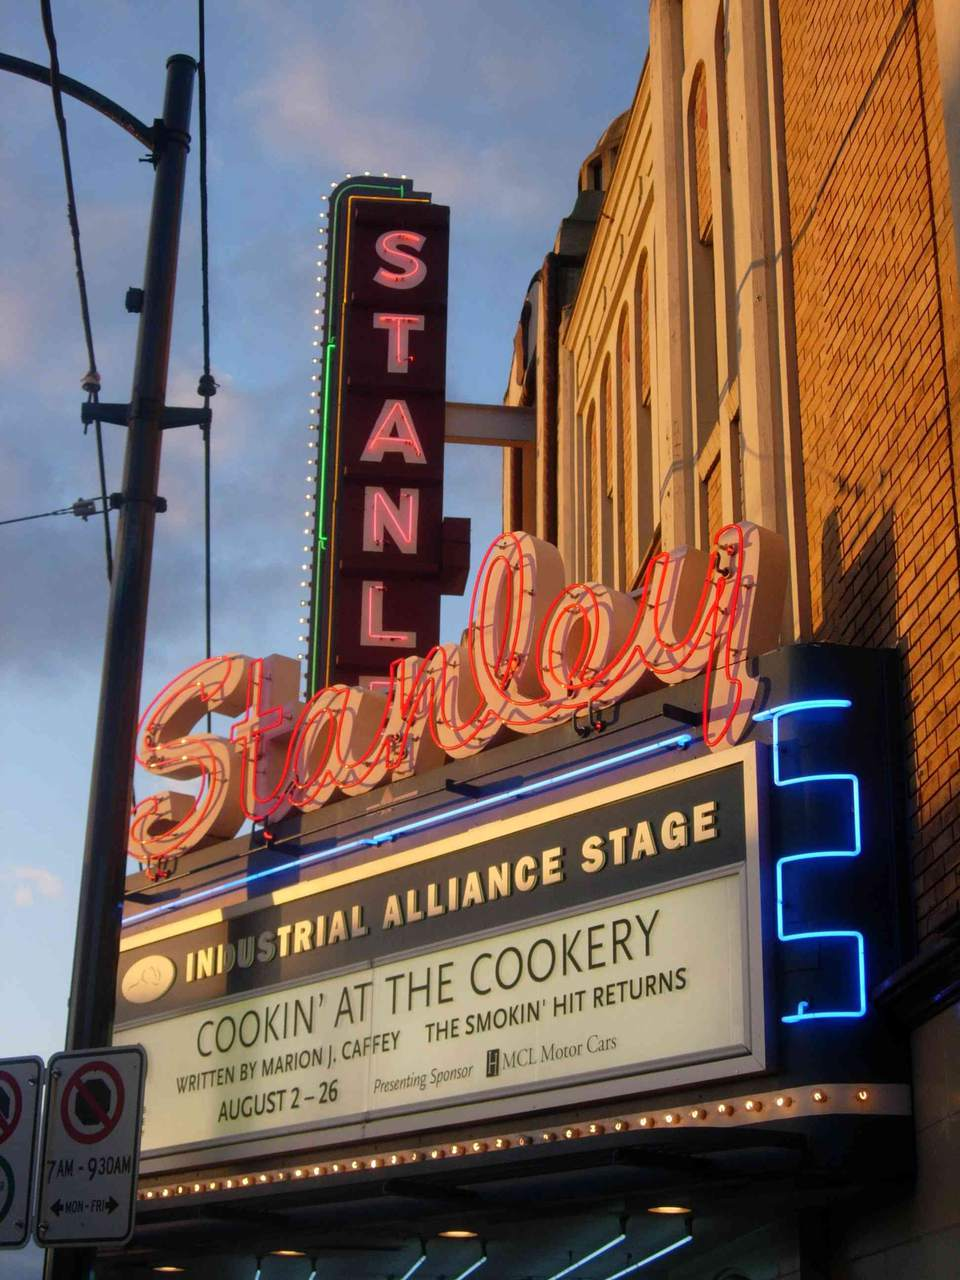 Exterior of Stanley Theatre in Vancouver, BC